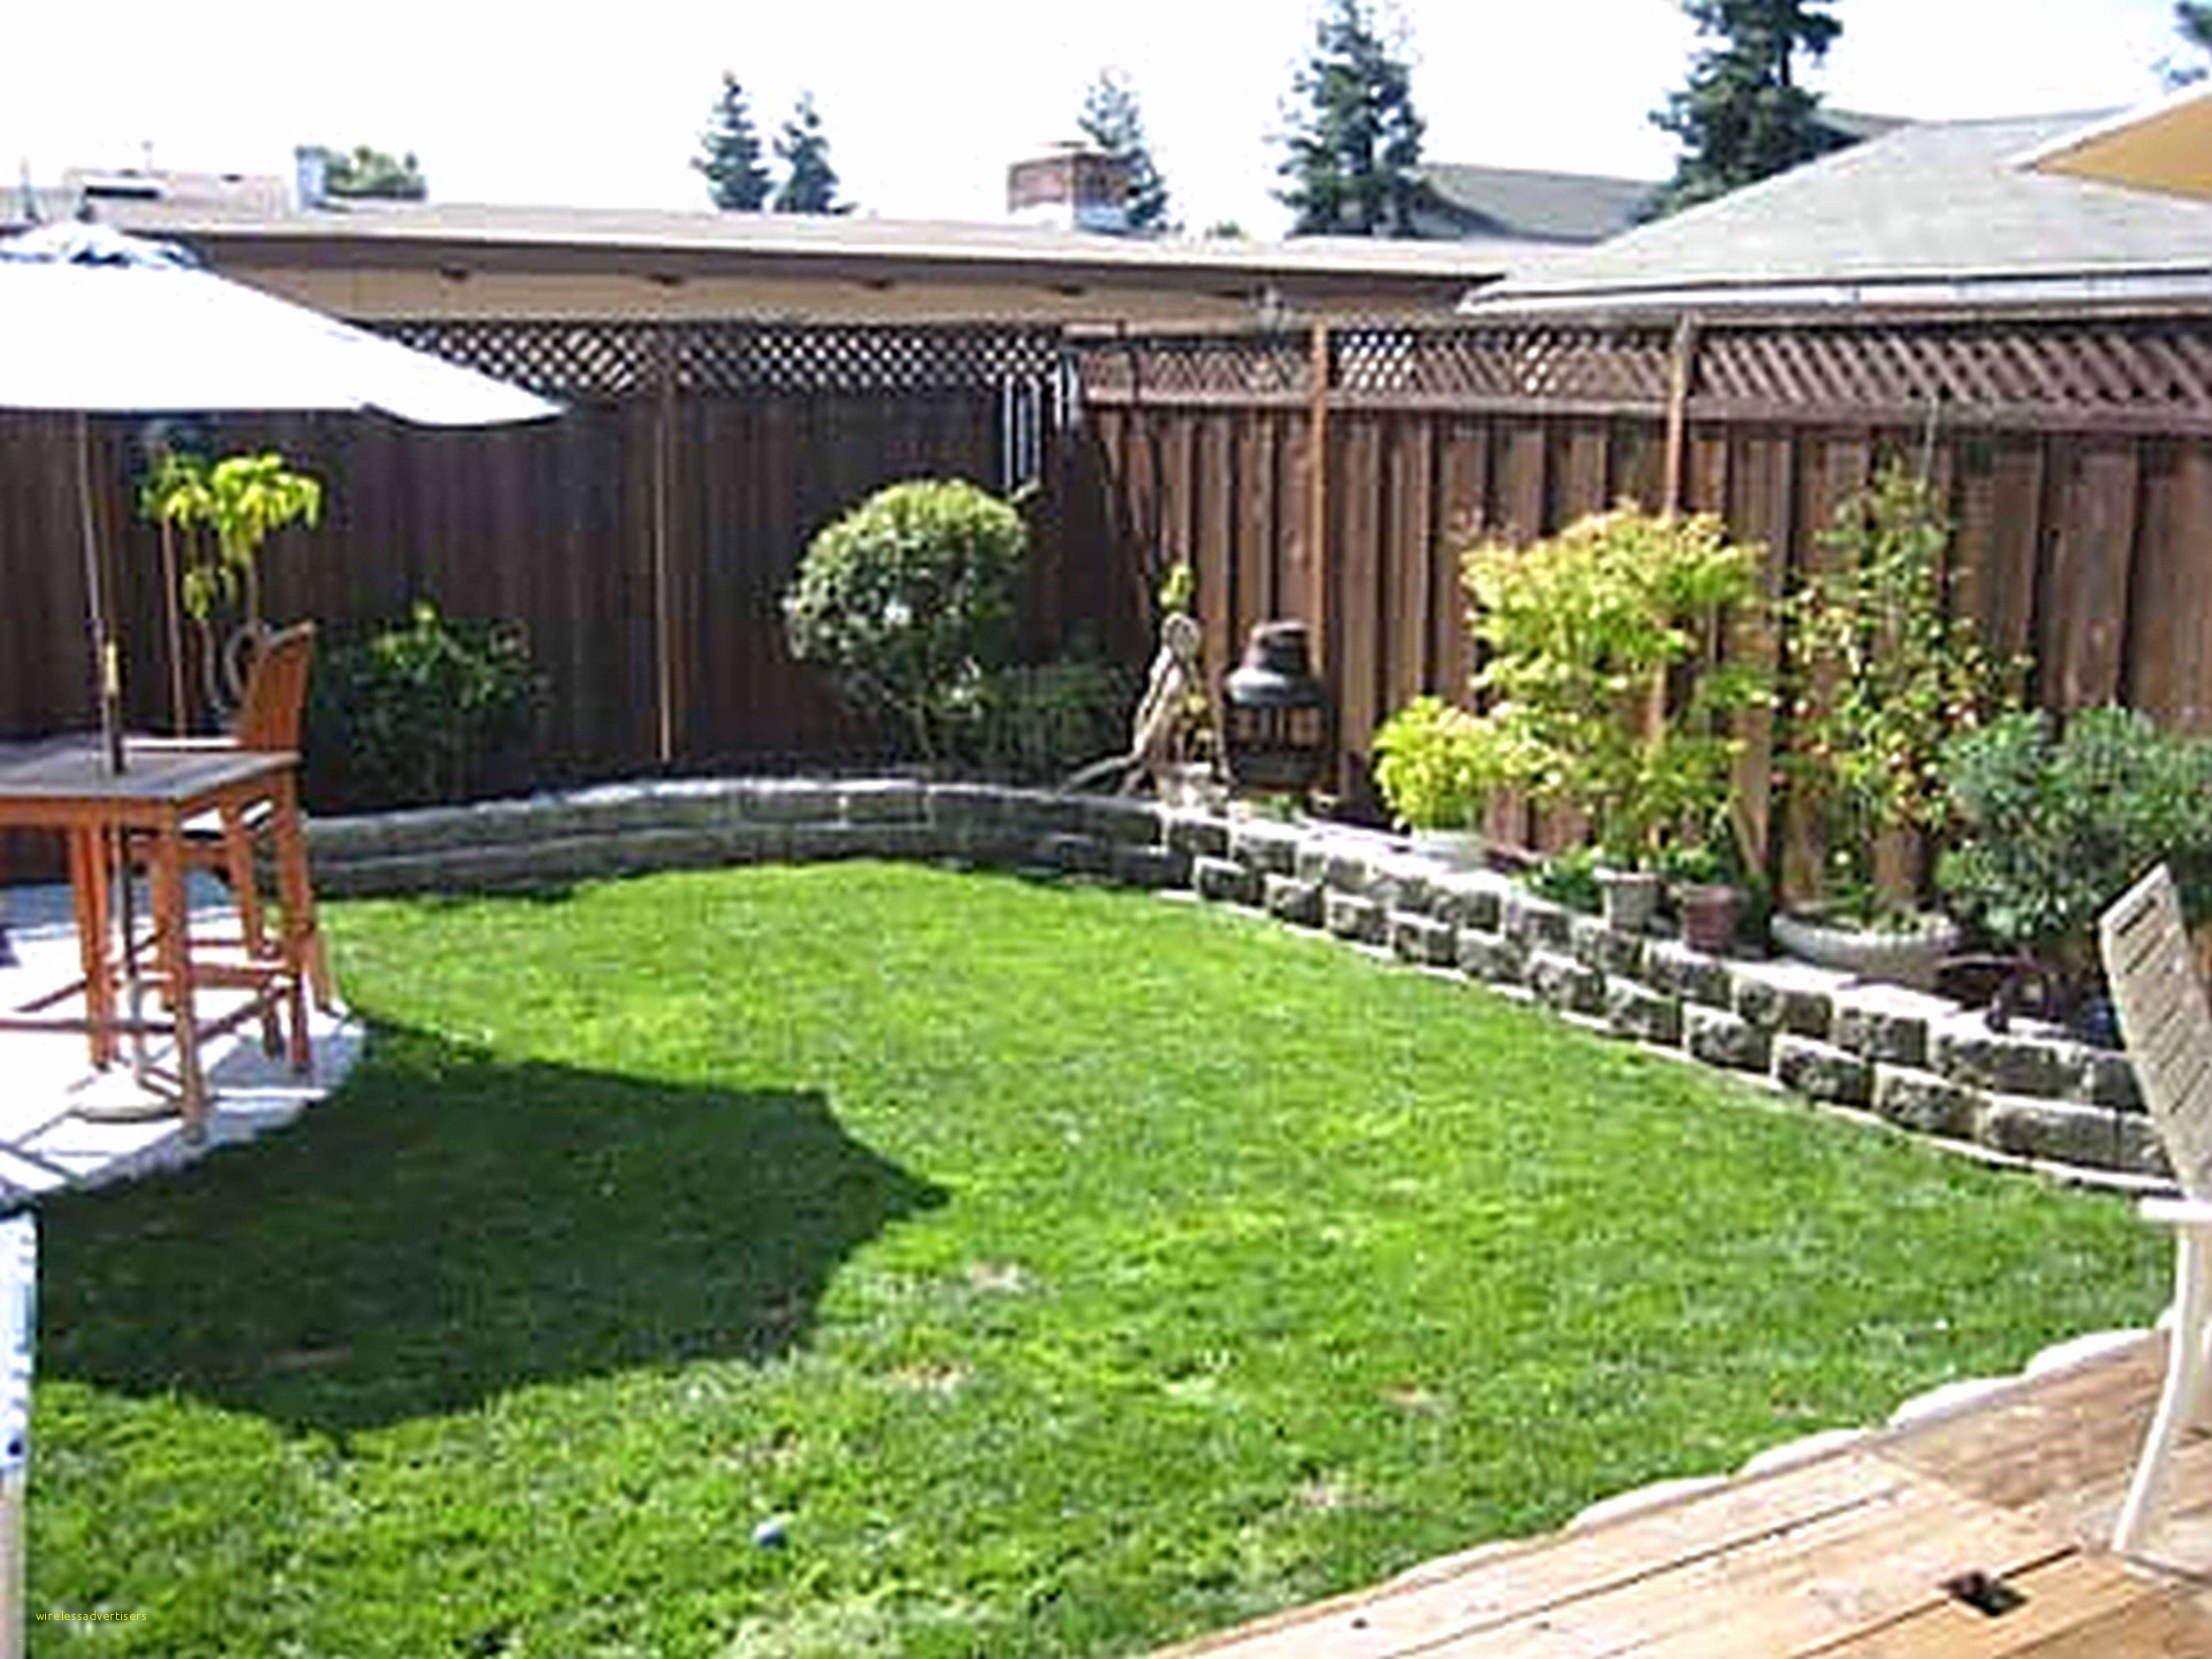 Backyard Ideas For Small Yards On A Budget Ajjtimes with 15 Awesome Ways How to Improve Cheap Backyard Ideas